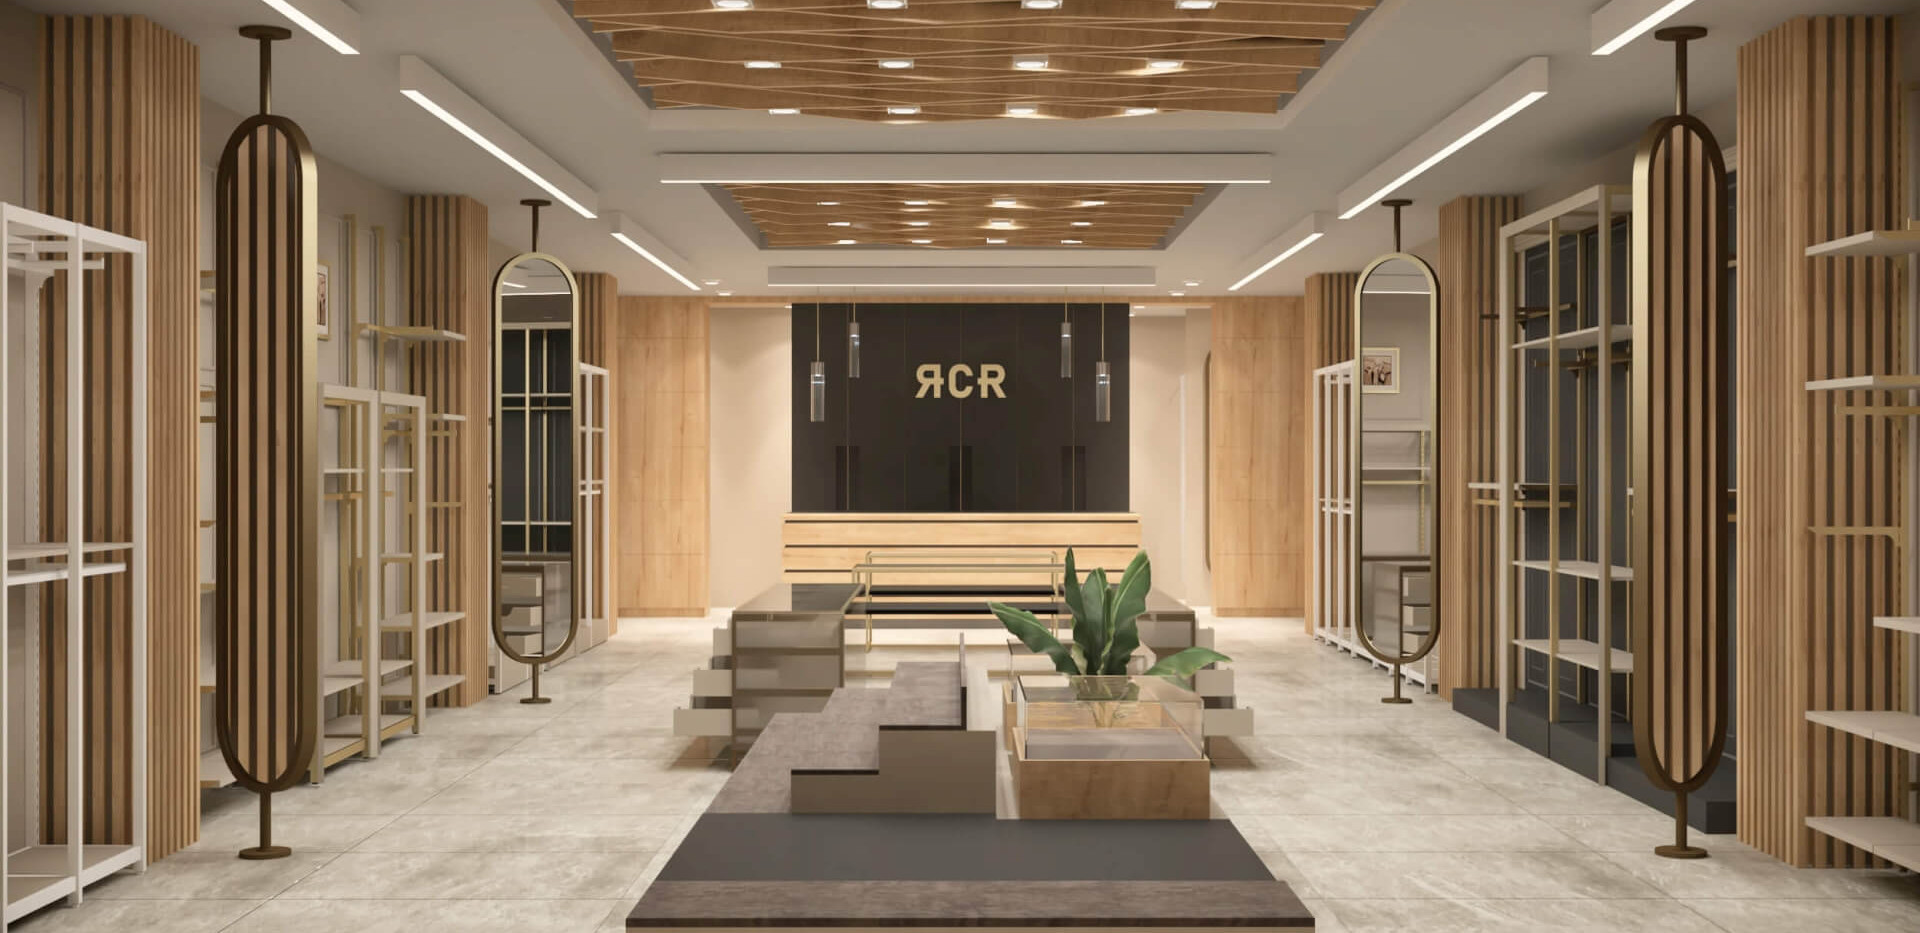 RCR - Fashion Store Shop Design-1.jpg